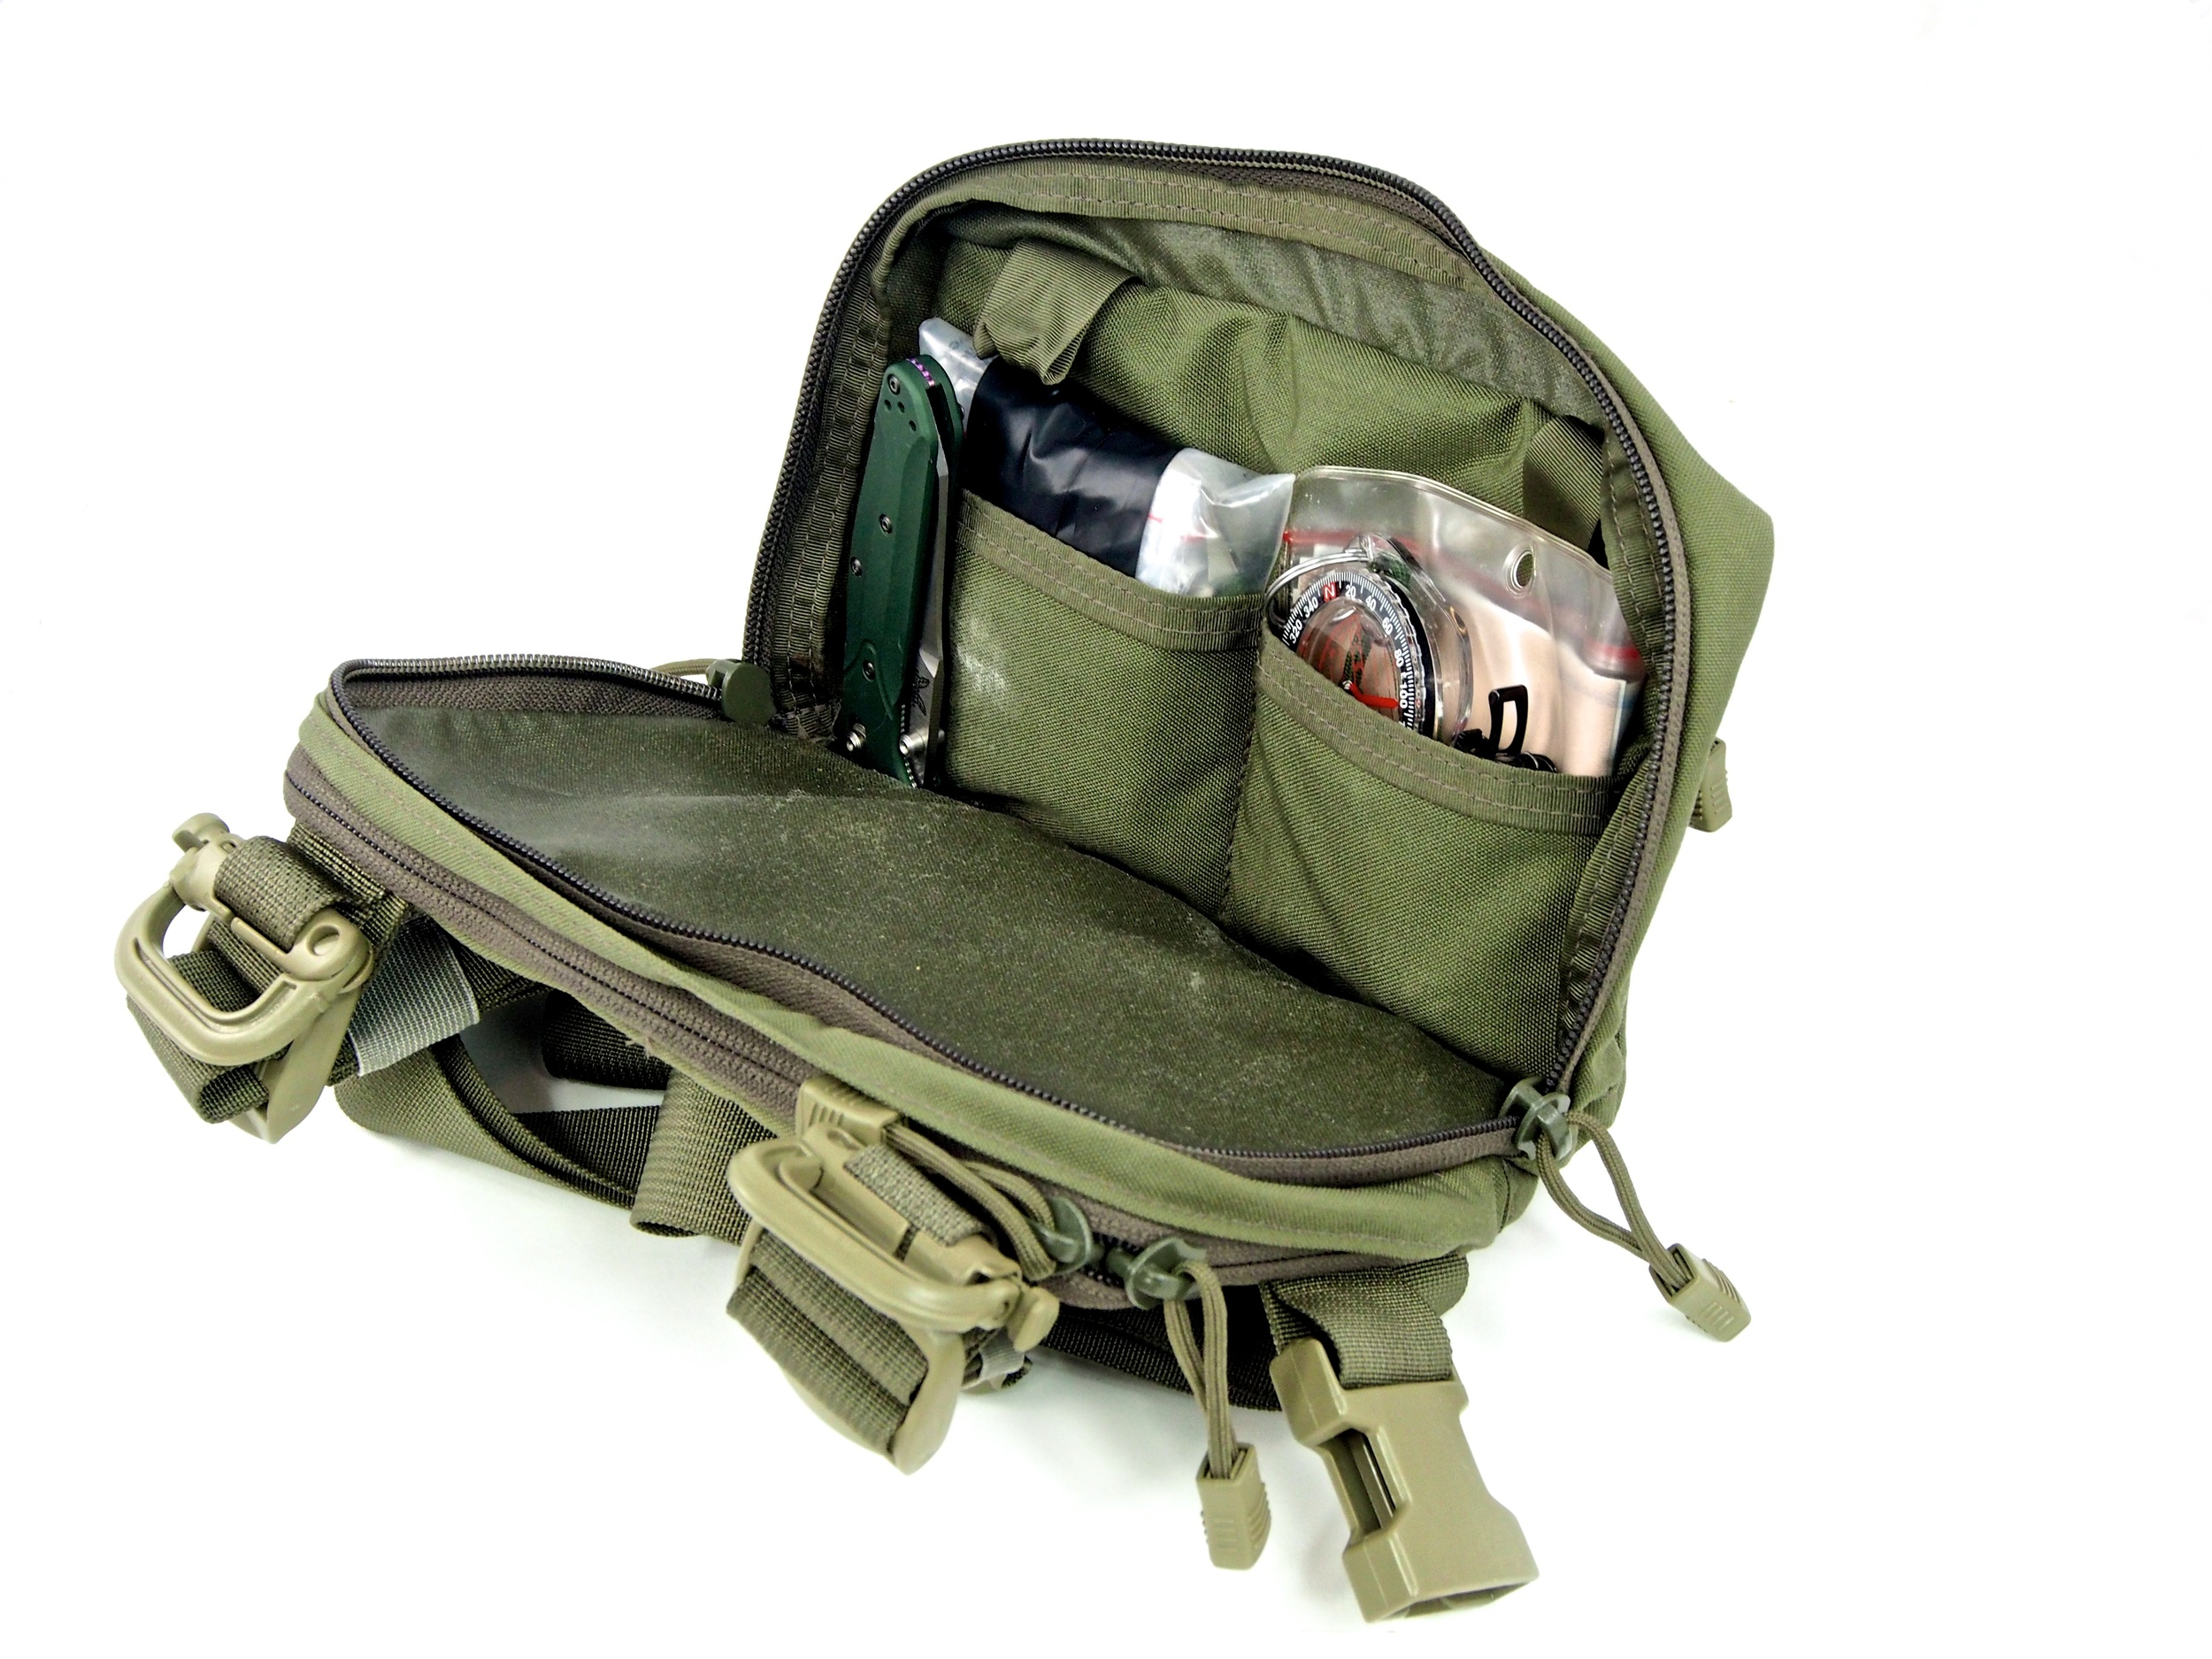 Organization inside the main compartment makes taking those small items with you into the backcountry less agrivating.